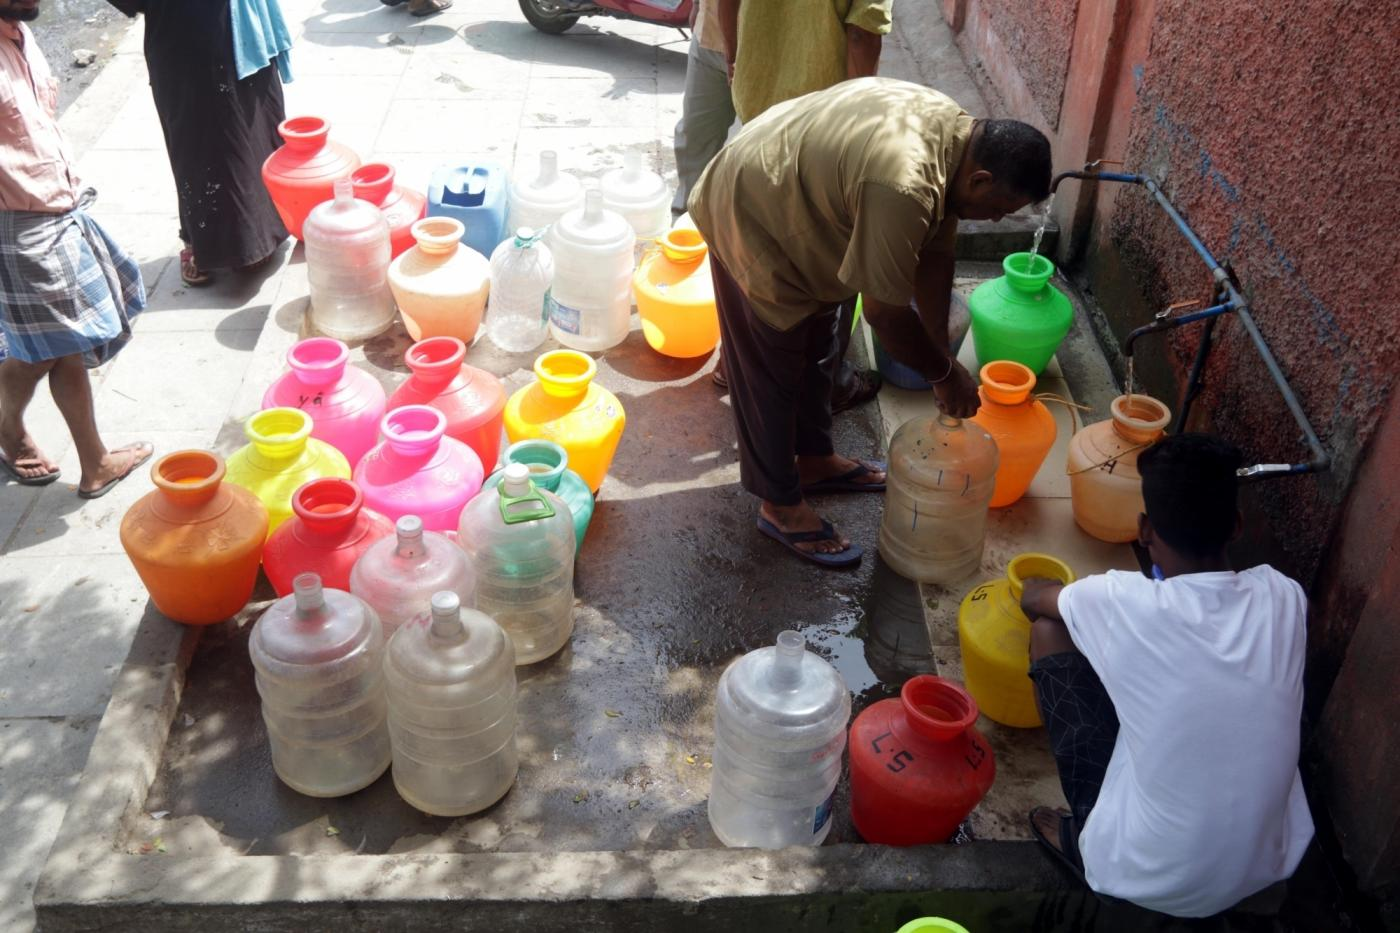 Chennai: Locals gather to collect drinking water at a water distribution point amid ongoing water crisis in Chennai, on June 19, 2019. Chennai and several other places in Tamil Nadu are going through water crisis. The reservoirs -- Cholavaram (full capacity 1,081 mcft) and Redhills (3,300 mcft) -- which cater to Chennai's water needs are dry while the storage at Poondi reservoir is 24 mcft as against the full capacity of 3,231 mcft, according to the Chennai Metropolitan Water Supply and Sewerage Board (Chennai Metro). (Photo: IANS) by .